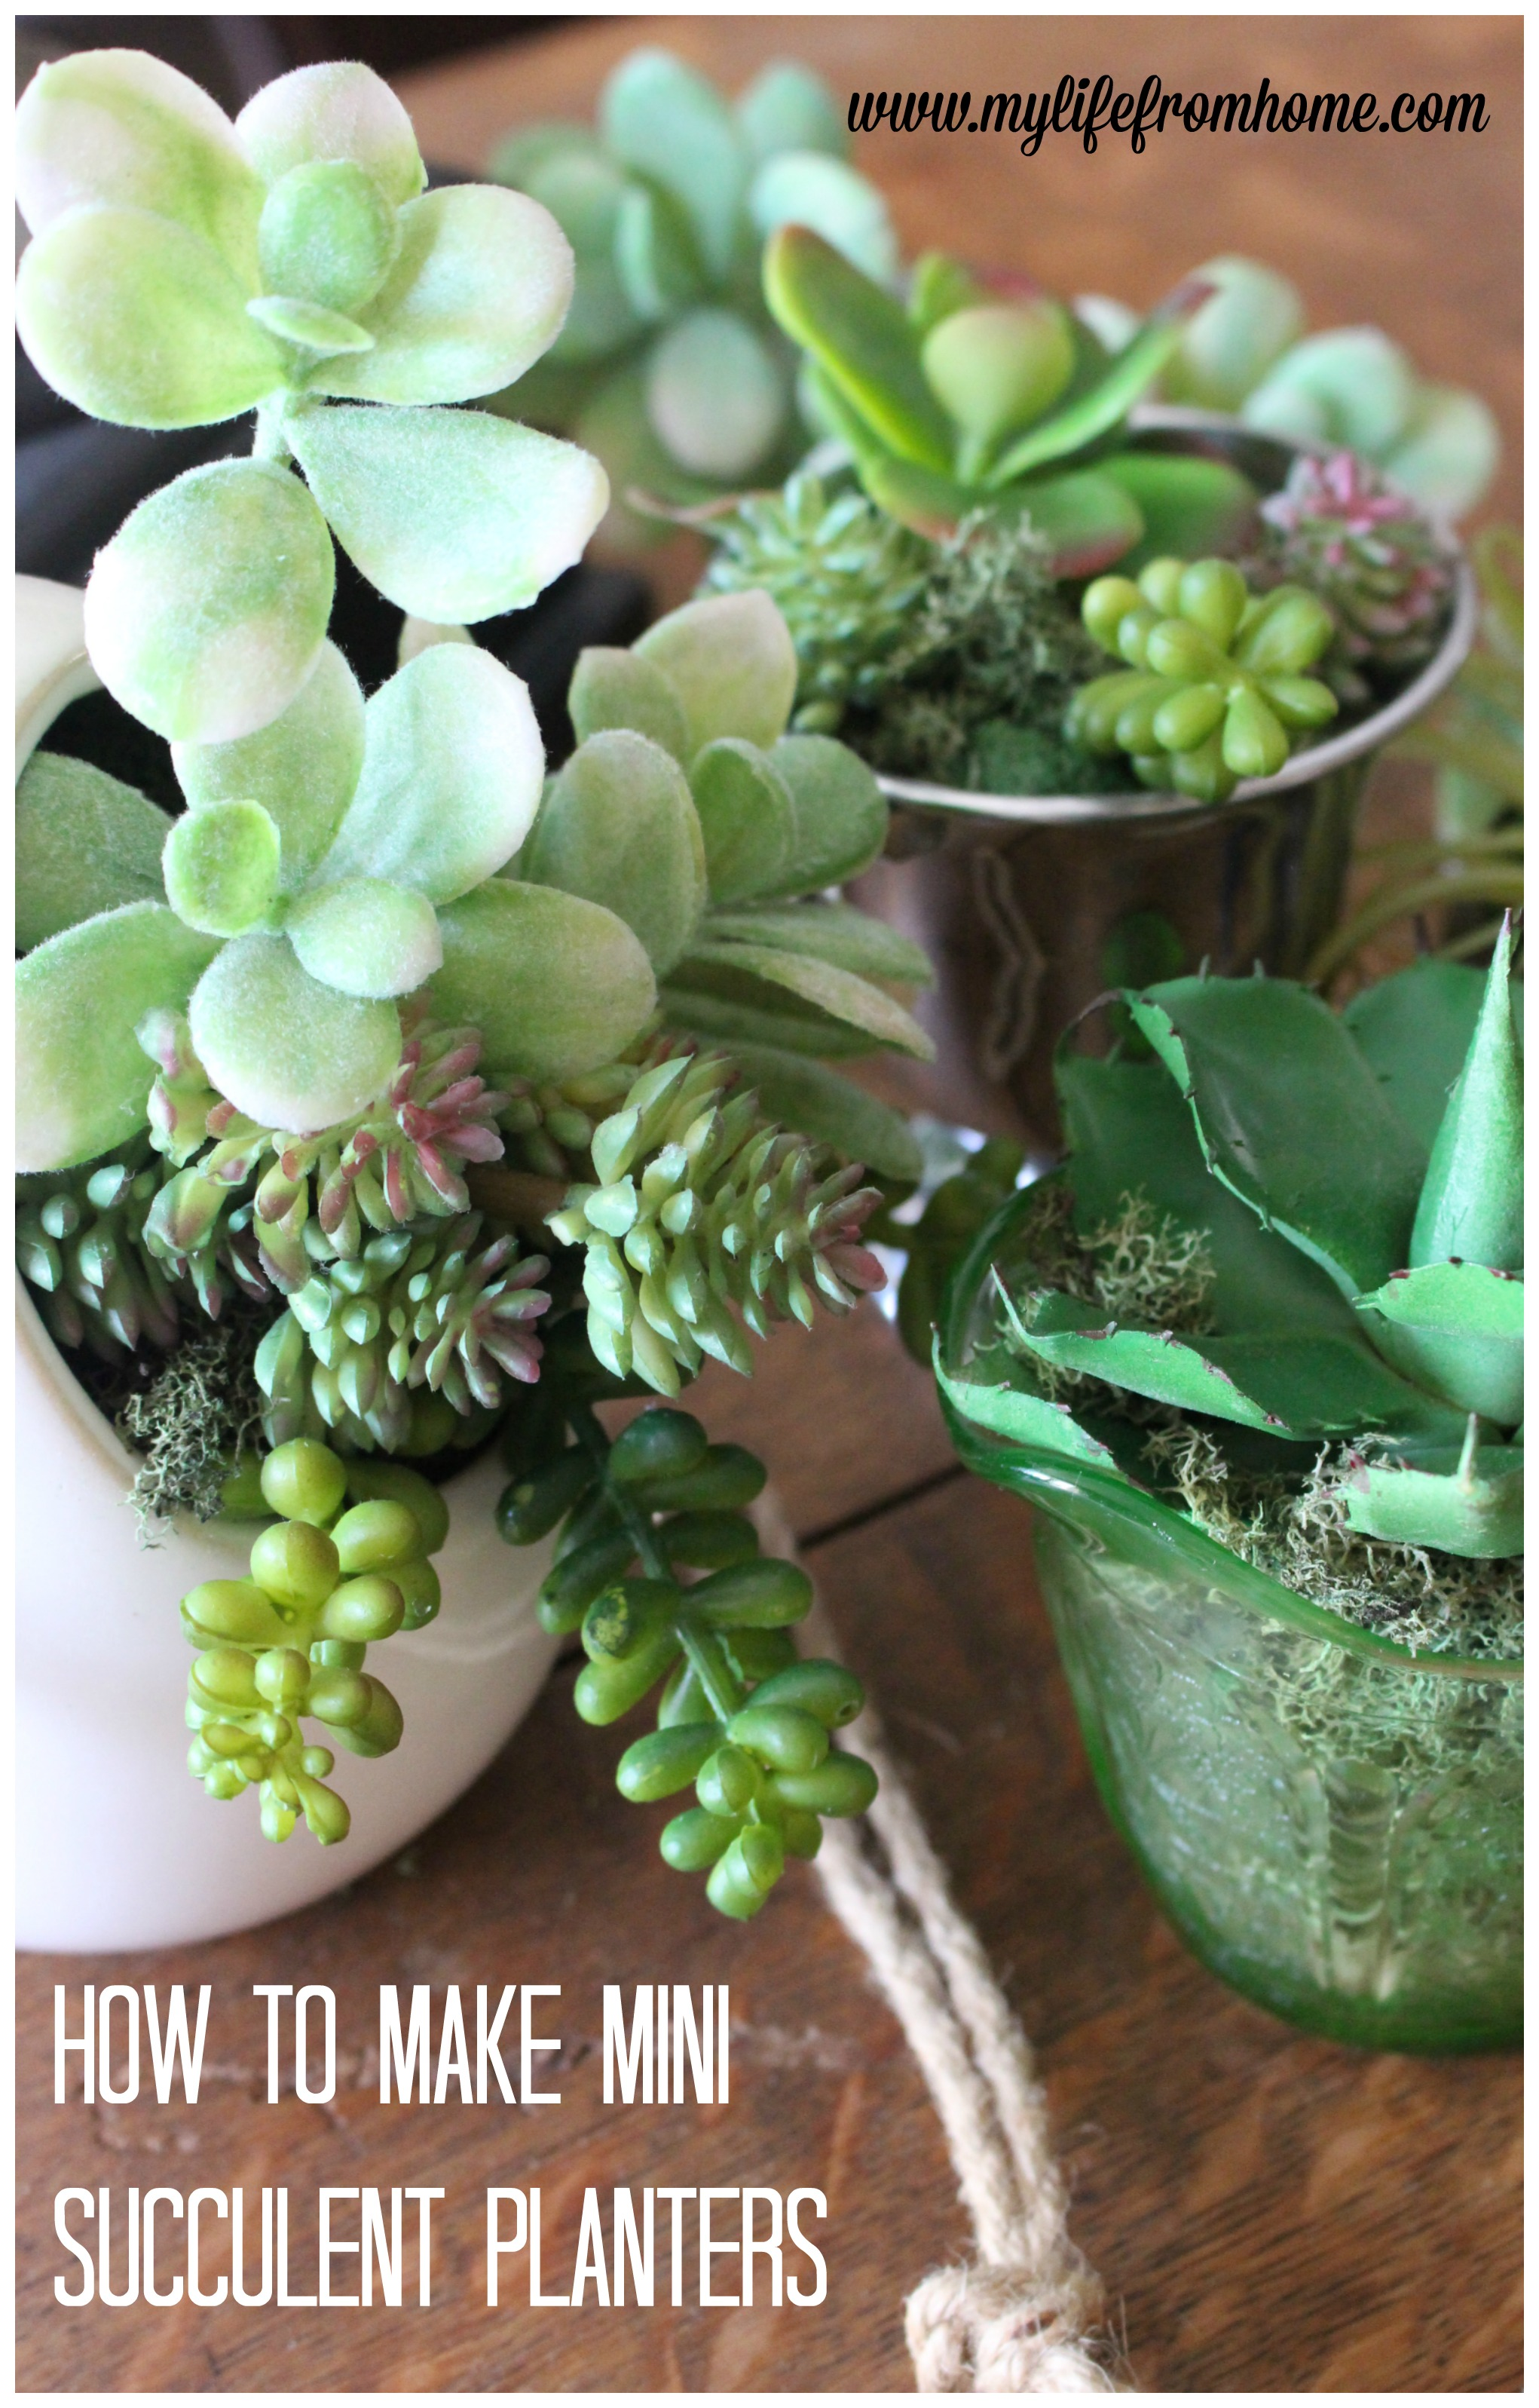 how to make- mini- succulent- arrangements- home decor- gardens- planters- floral- silk- faux- succulents- pots- spring- vintage